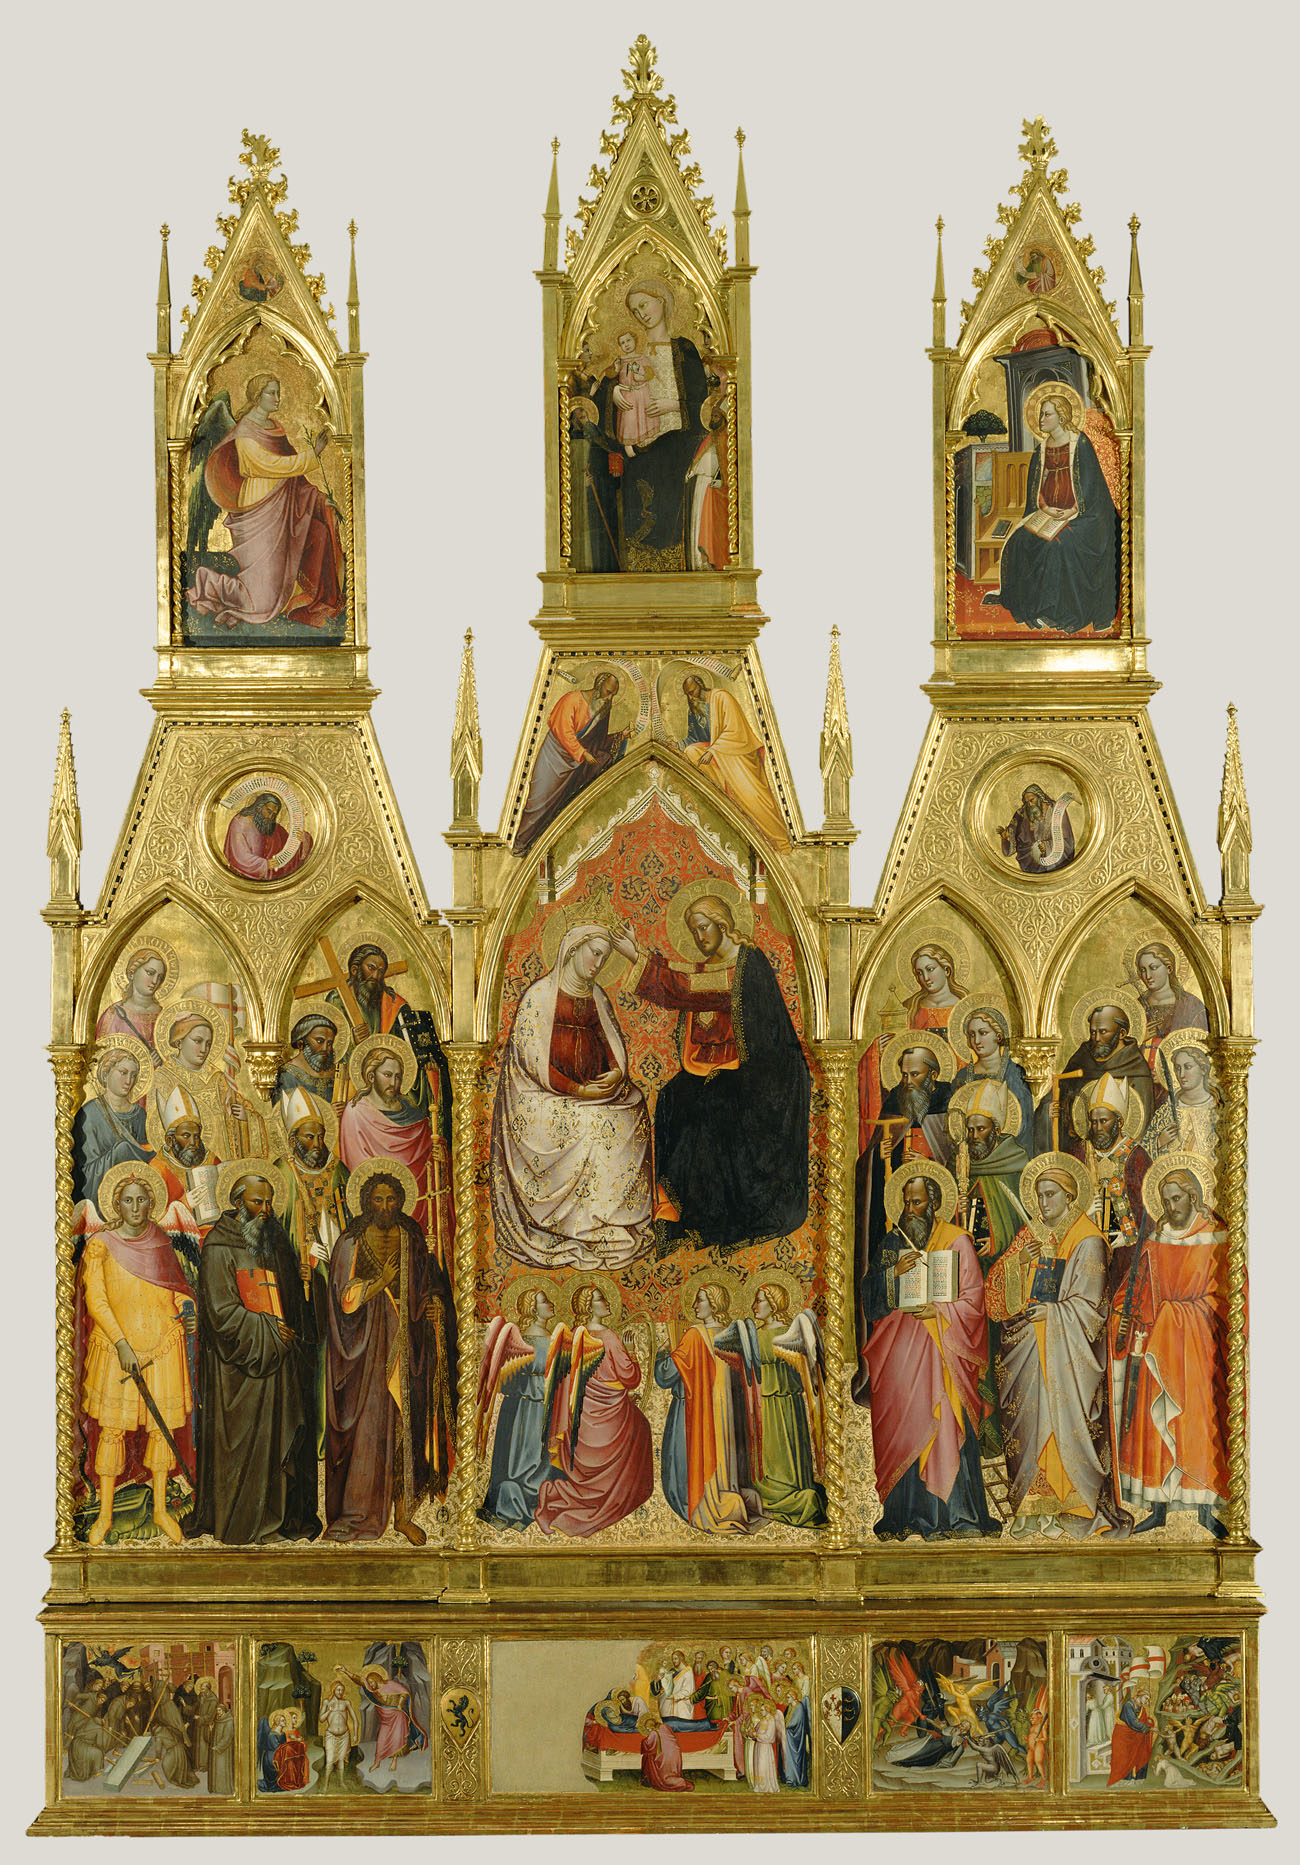 Polyptych with Coronation of the Virgin and Saints / Cenni